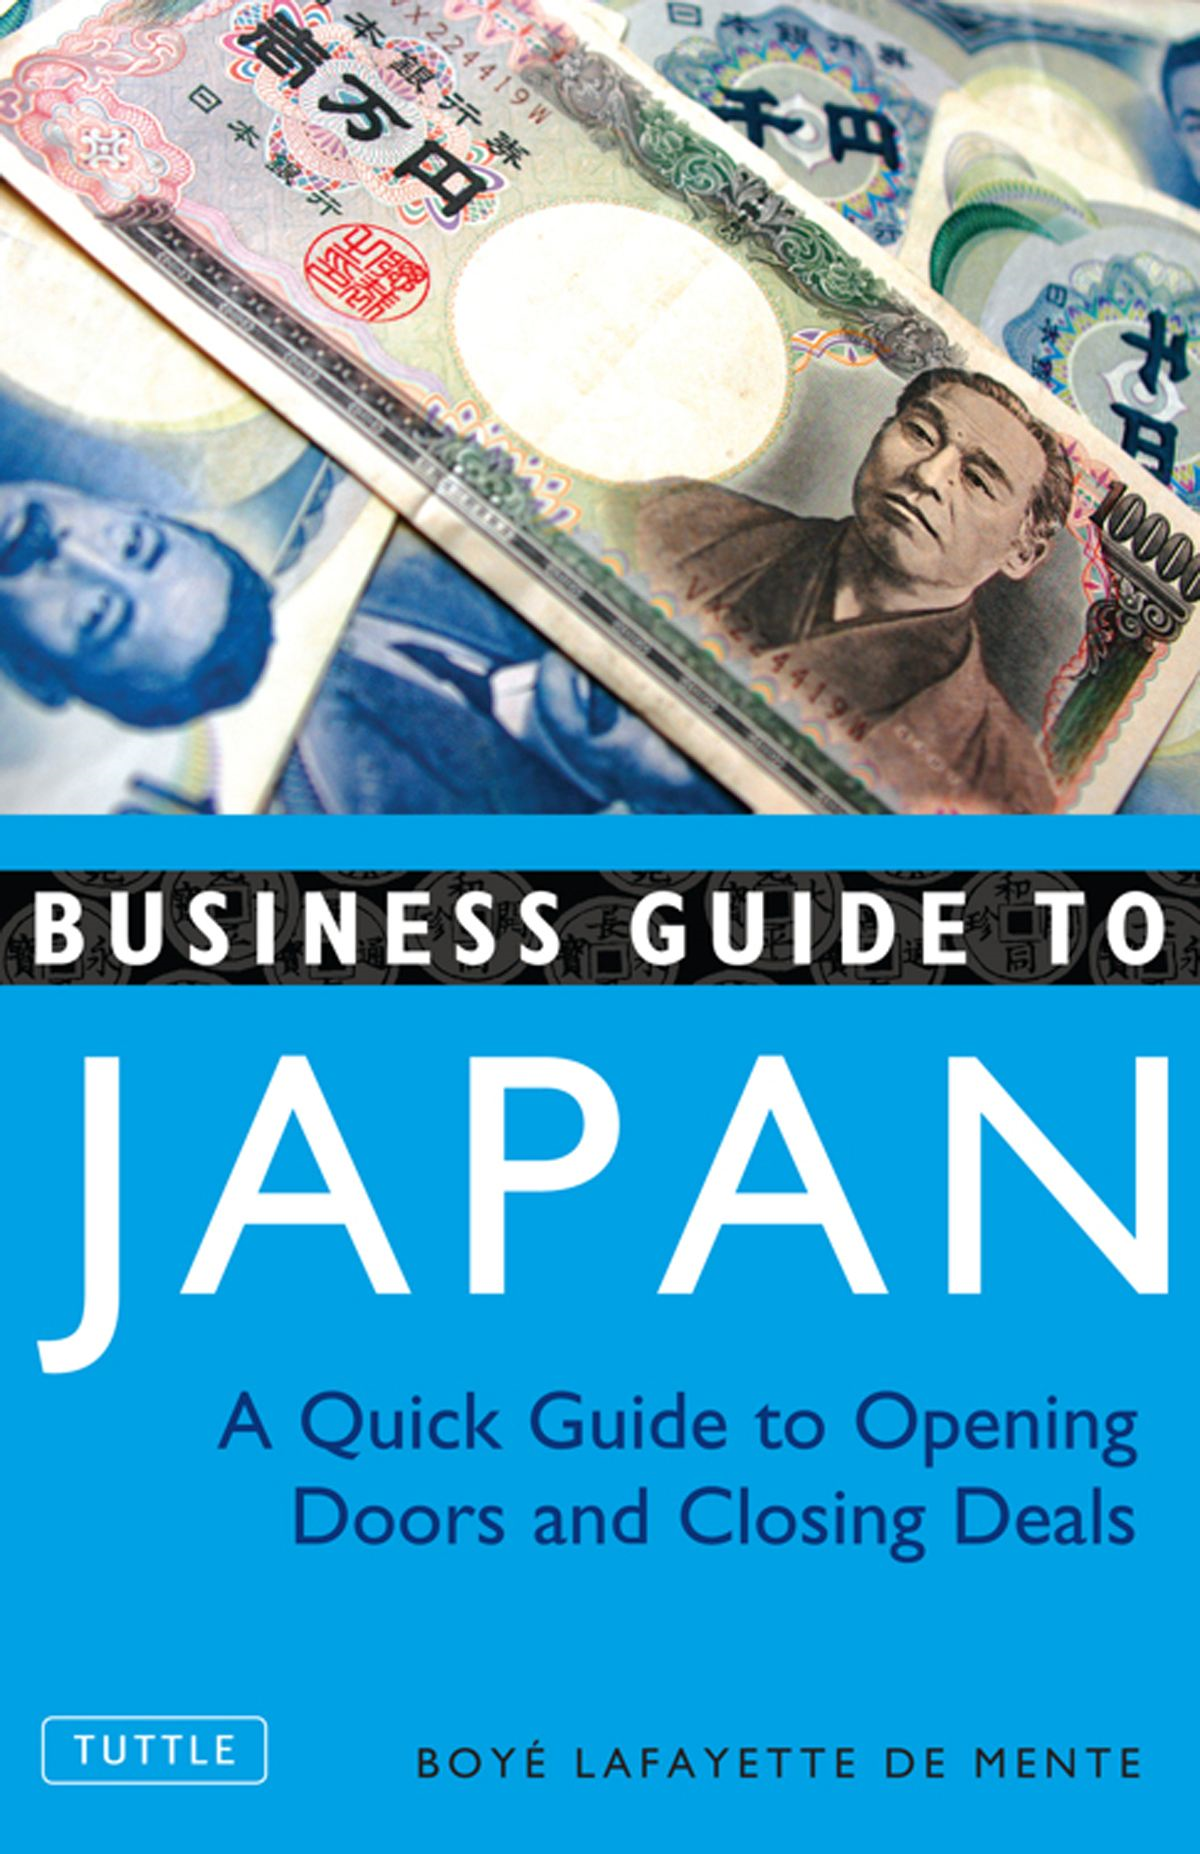 Business Guide to Japan: A Quick Guide to Opening Doors and Closing Deals By: Boye Lafayette De Mente